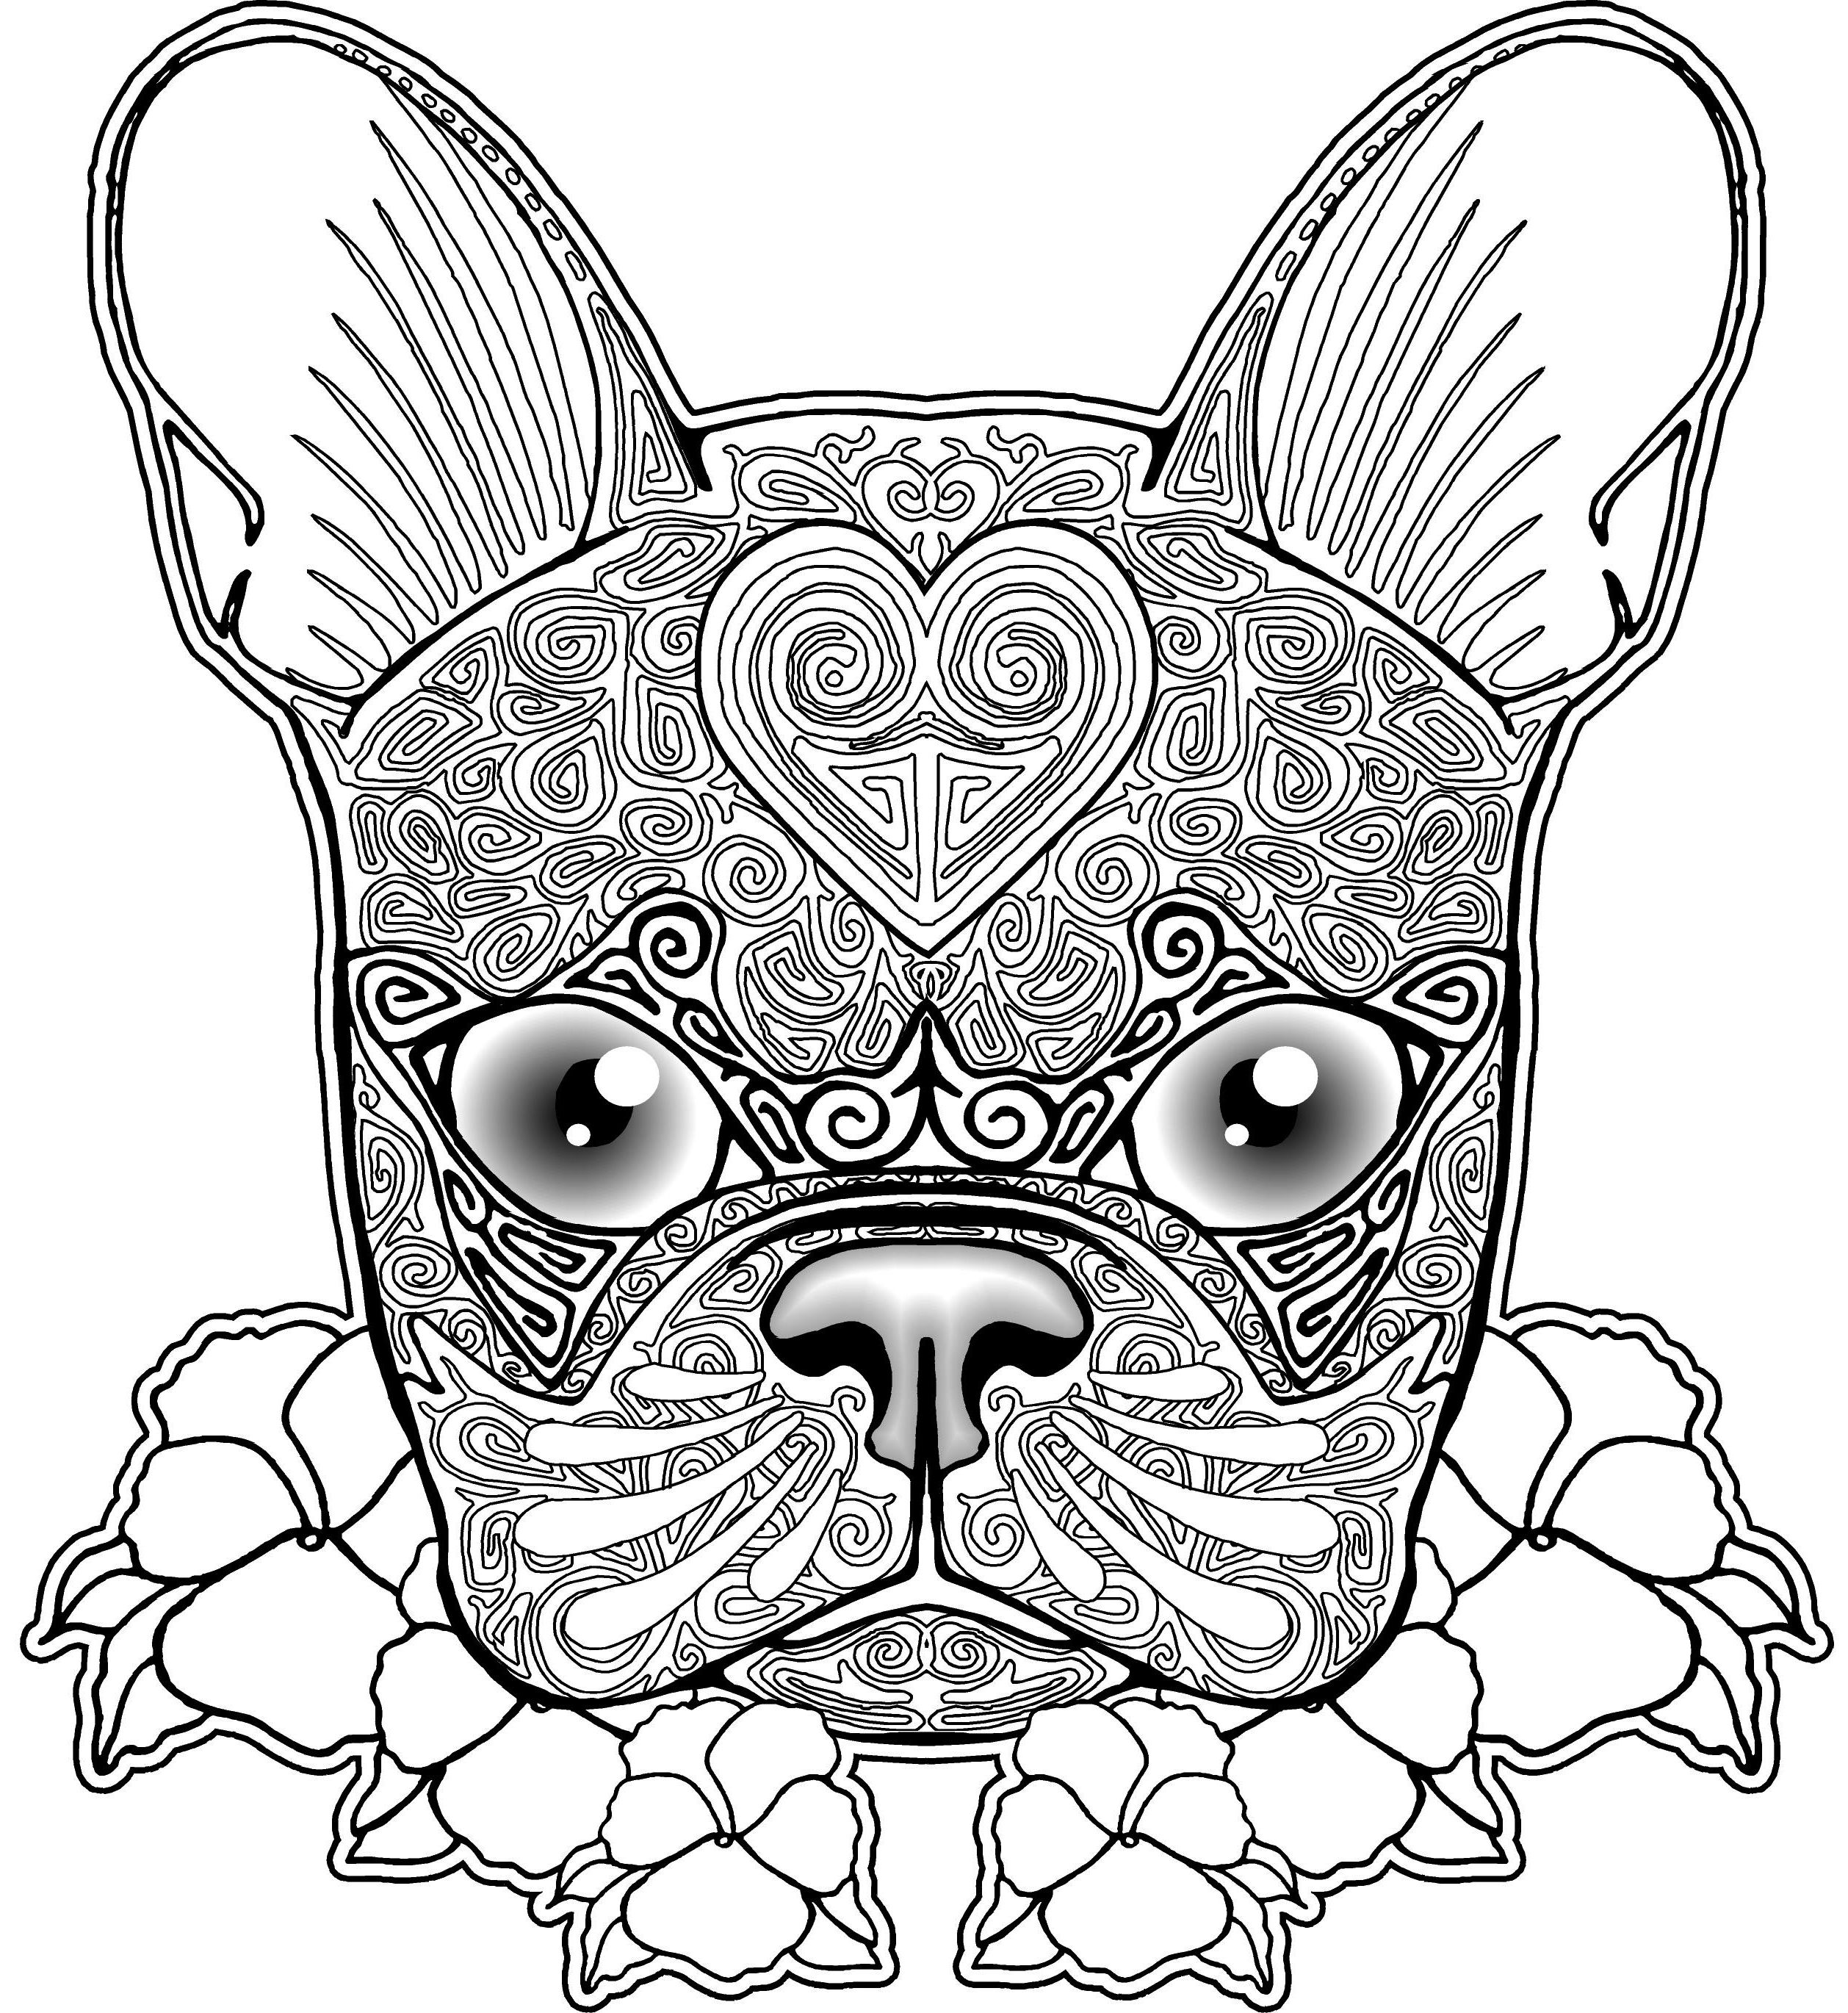 dog coloring puppy cute puppy dog coloring pages for kids learning dog coloring